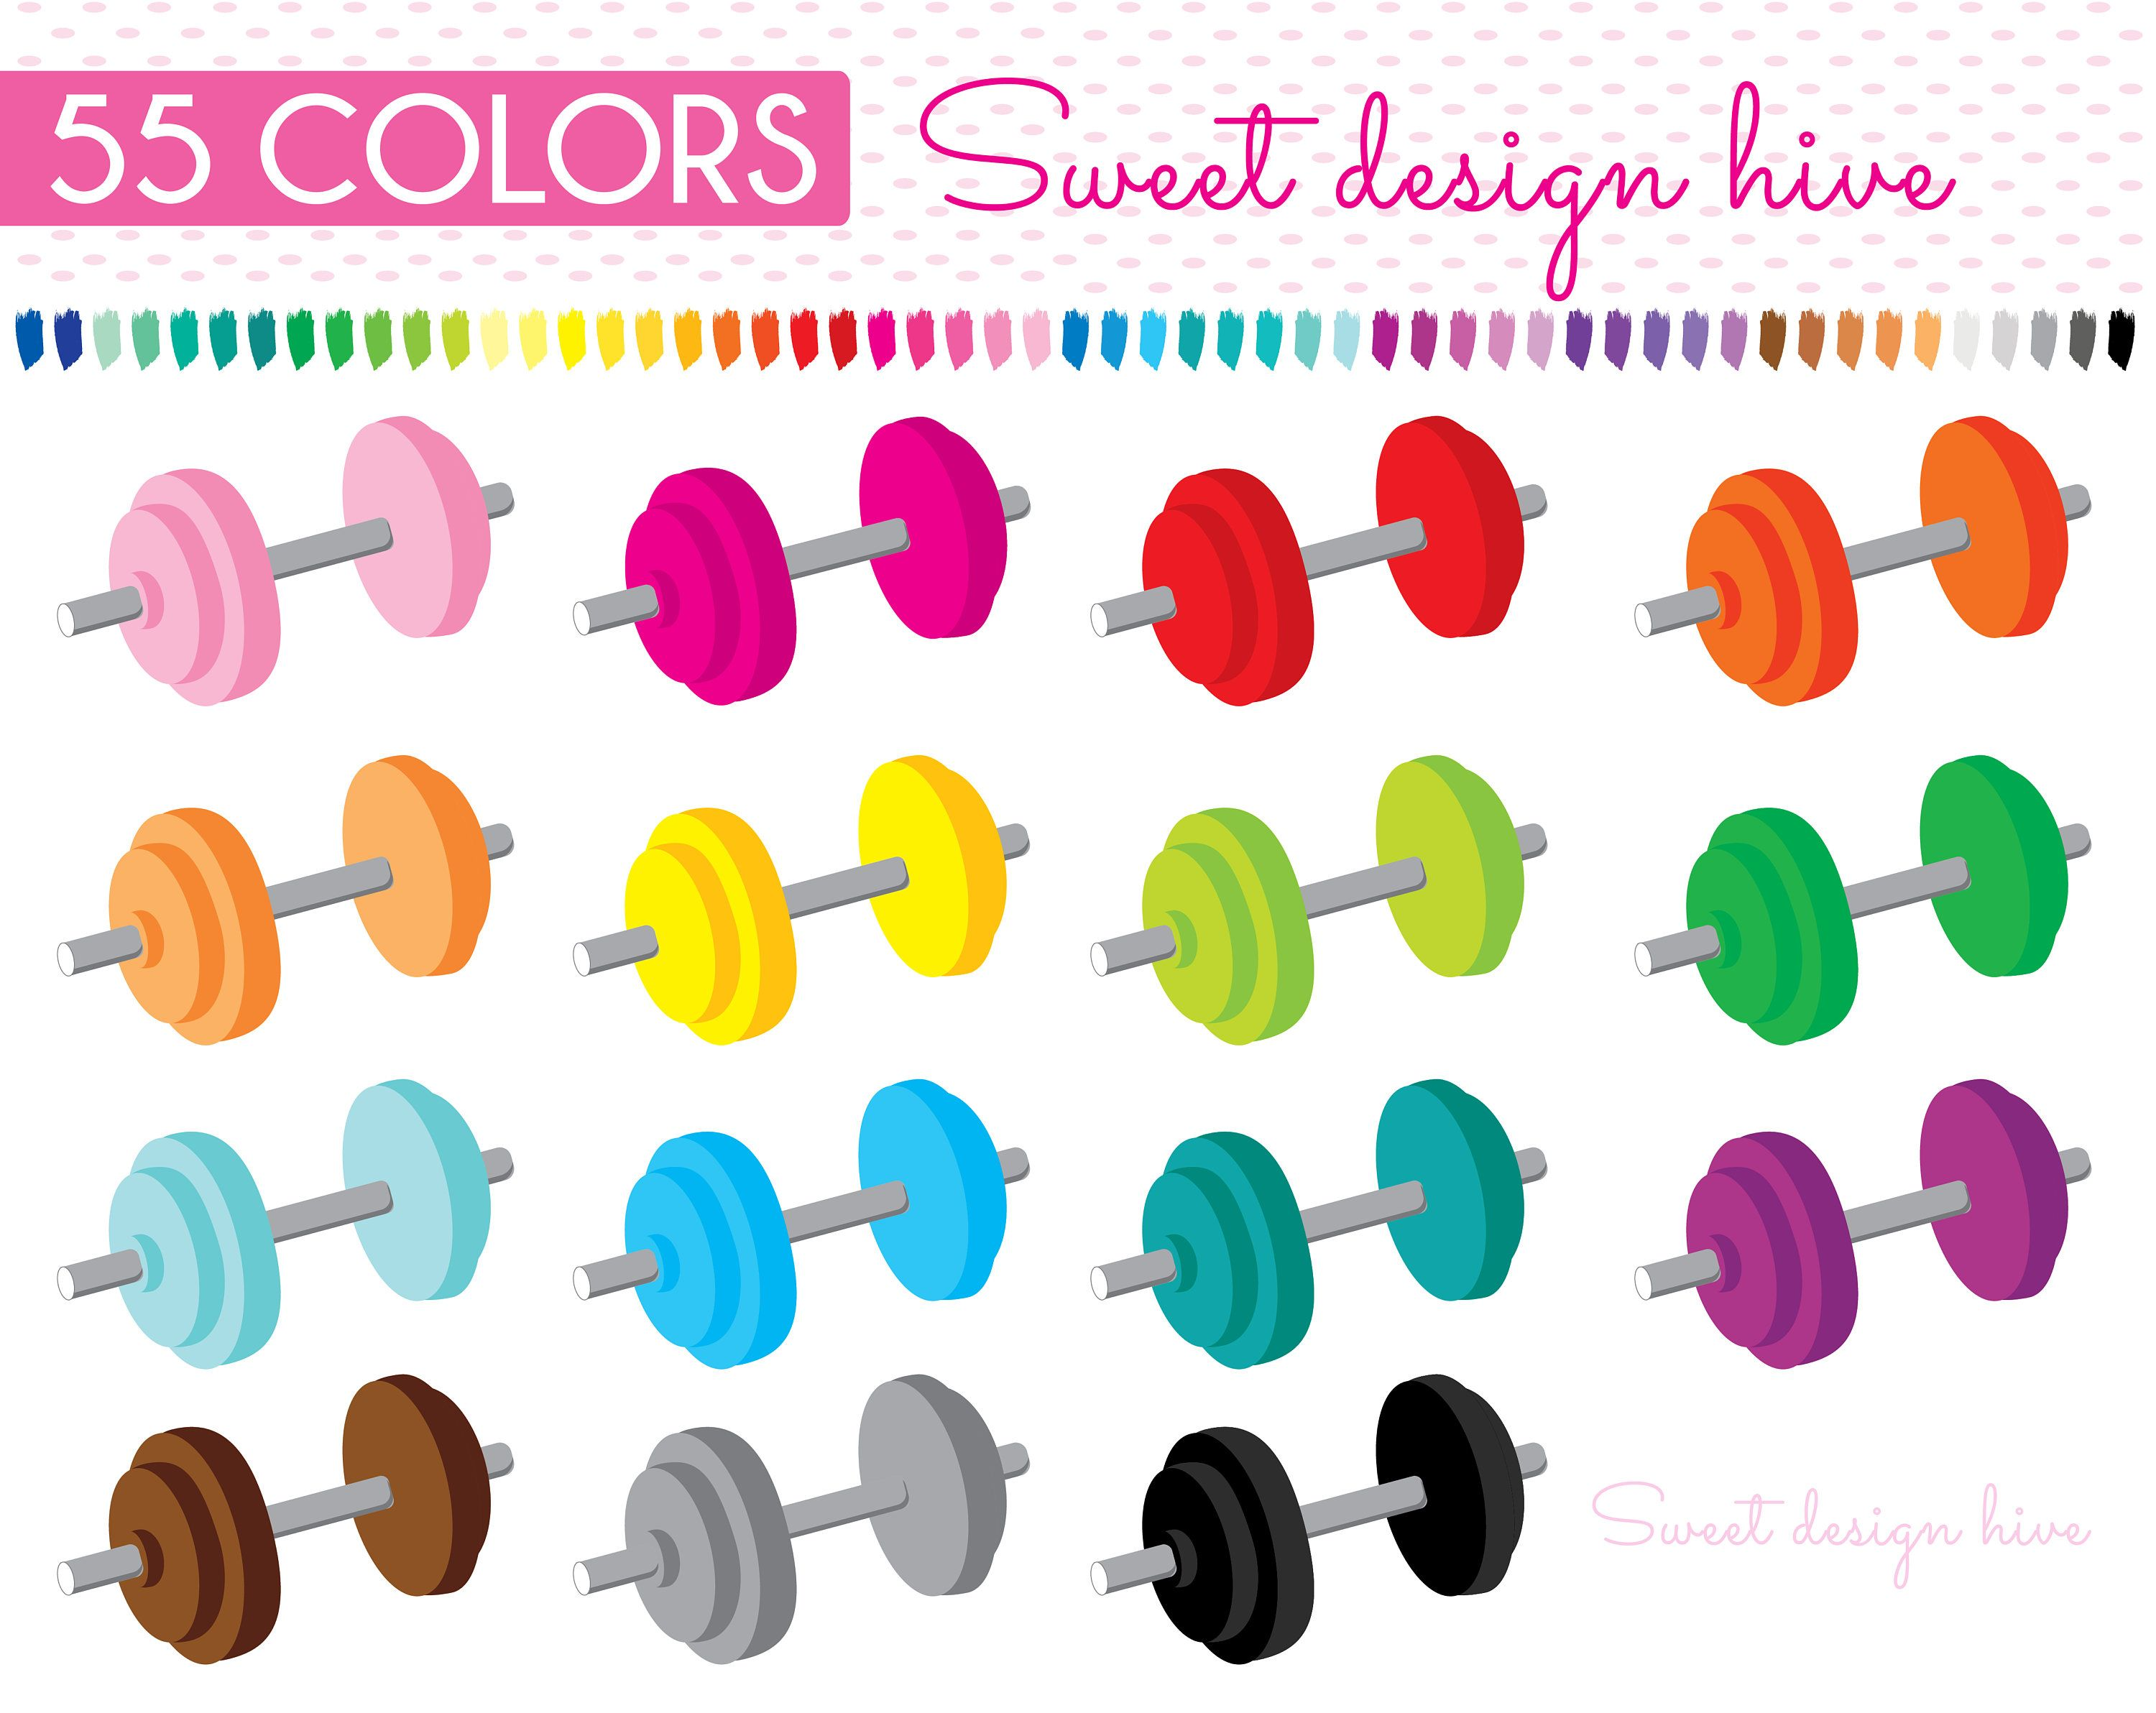 Dumbbell clipart gym tool. Weights fitness sports workout